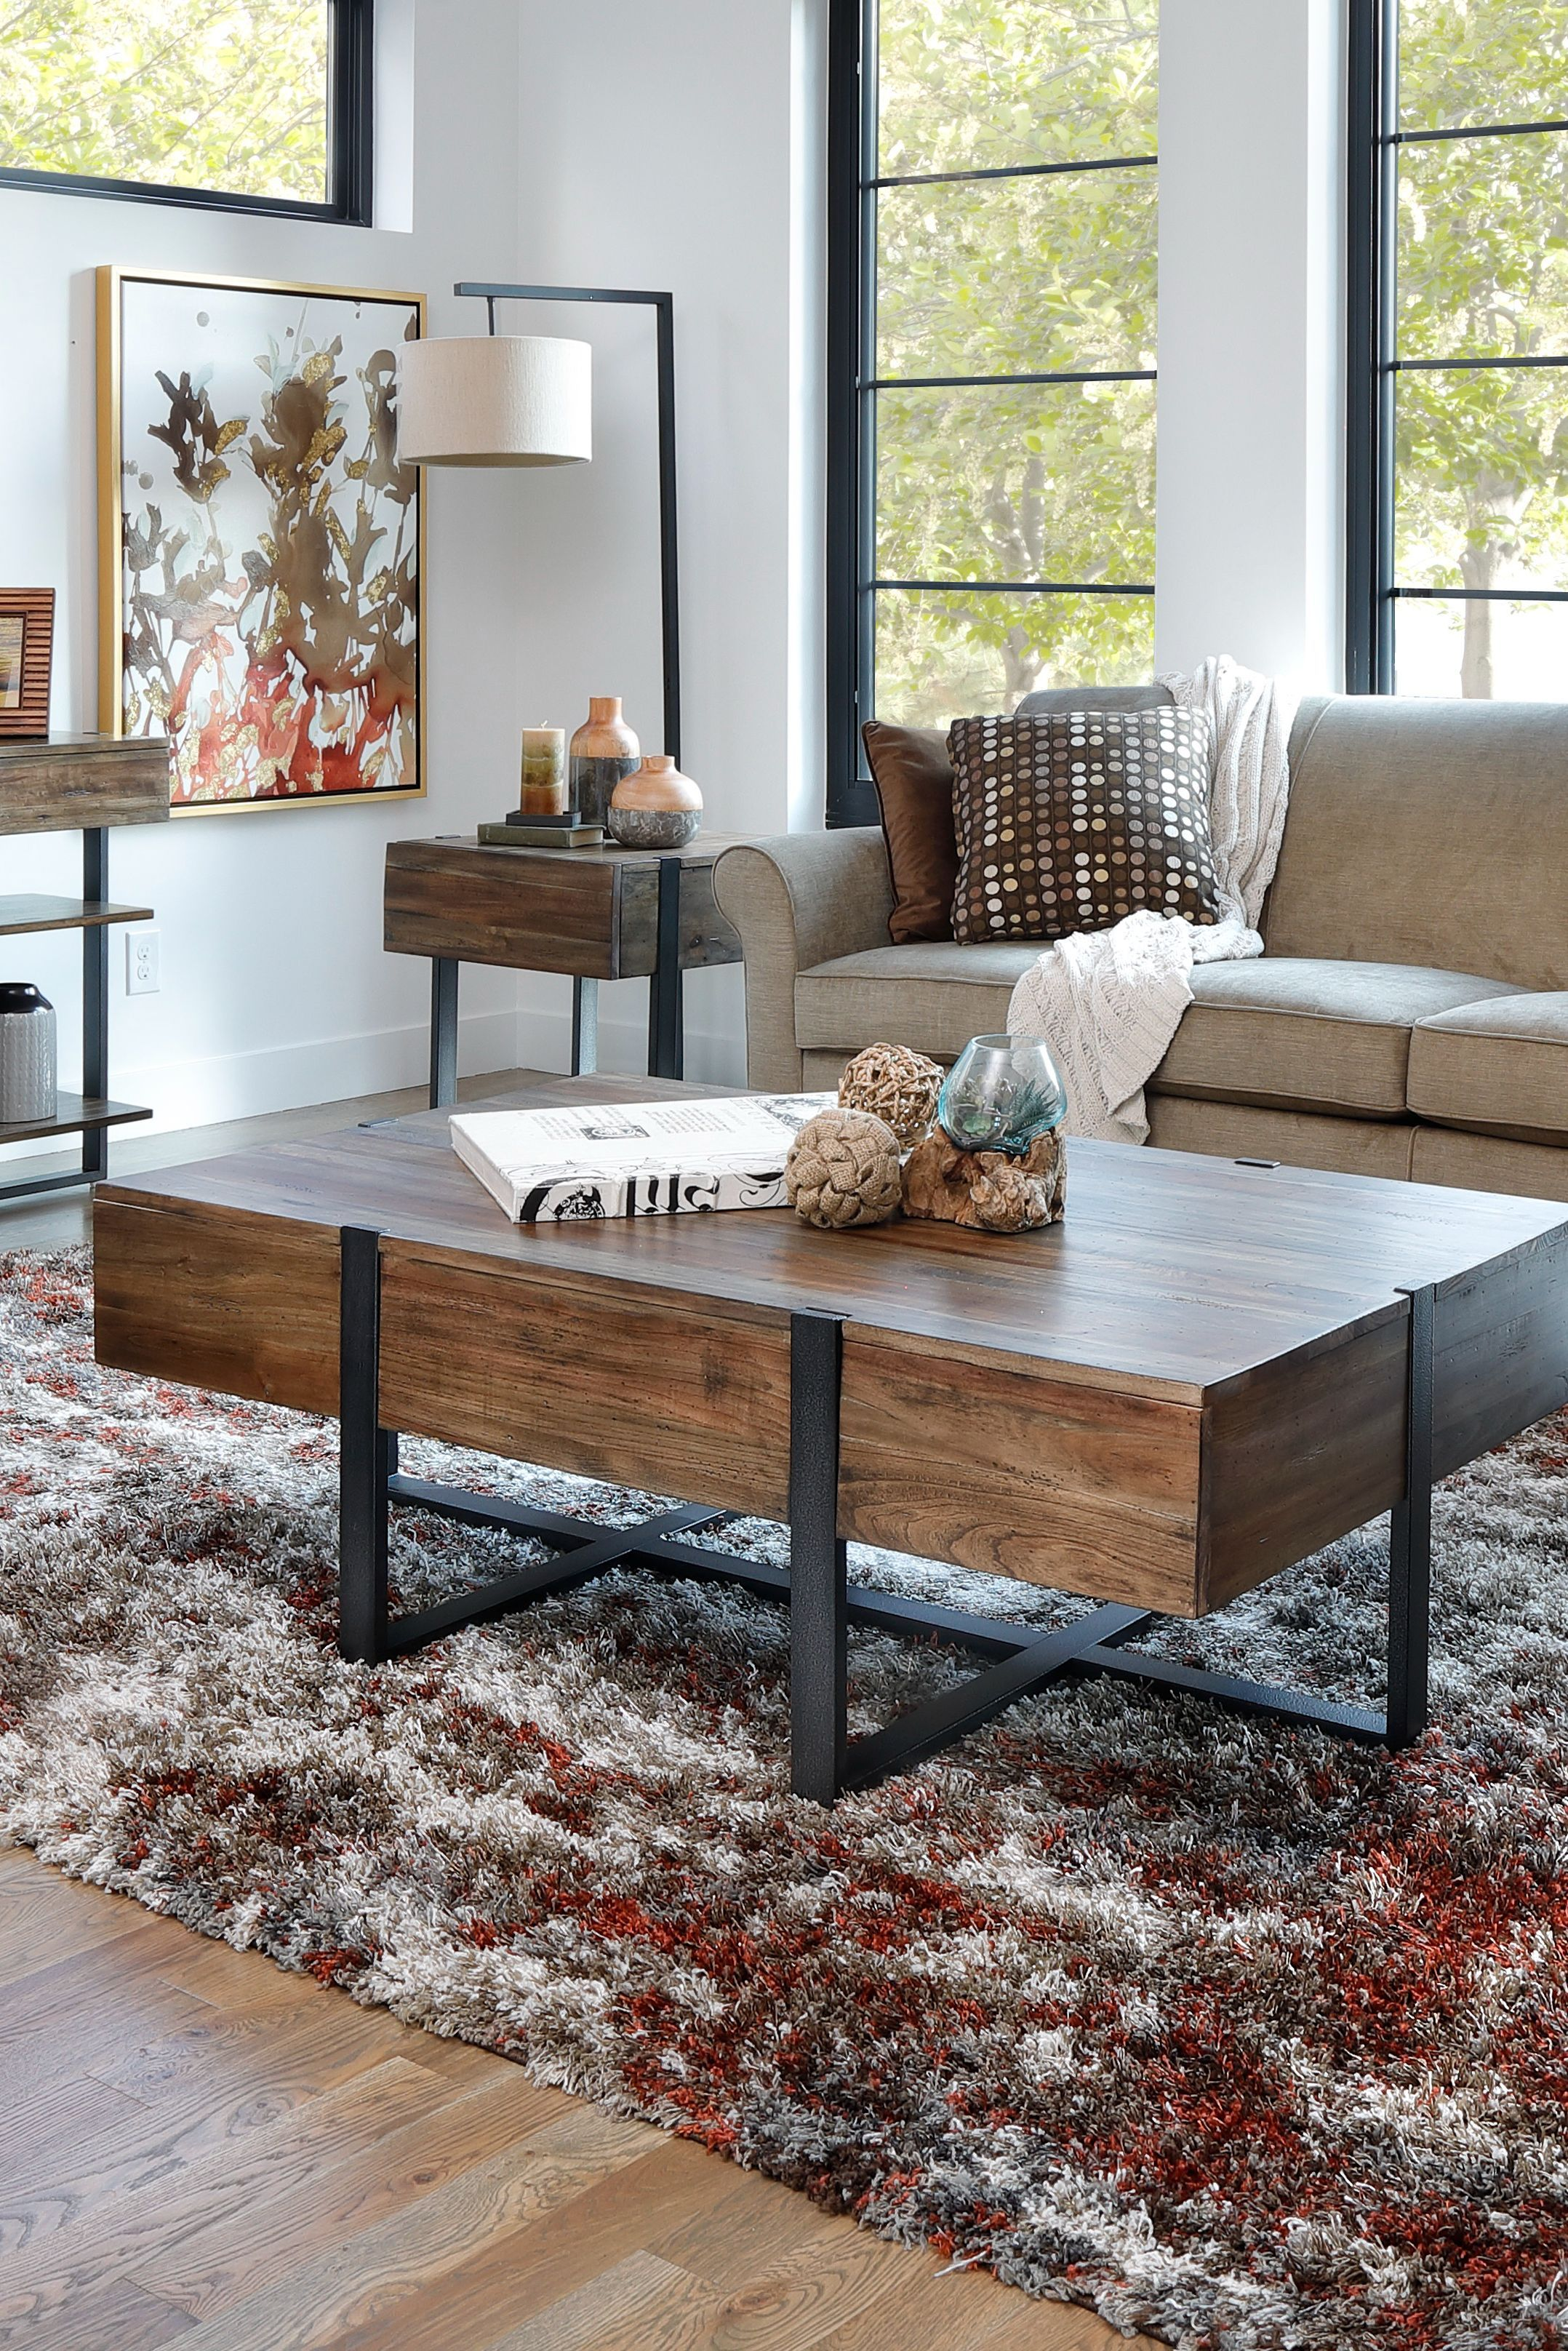 Treviso Coffee Table Coffee Table Rowe Furniture Living Room Table [ 3232 x 2156 Pixel ]